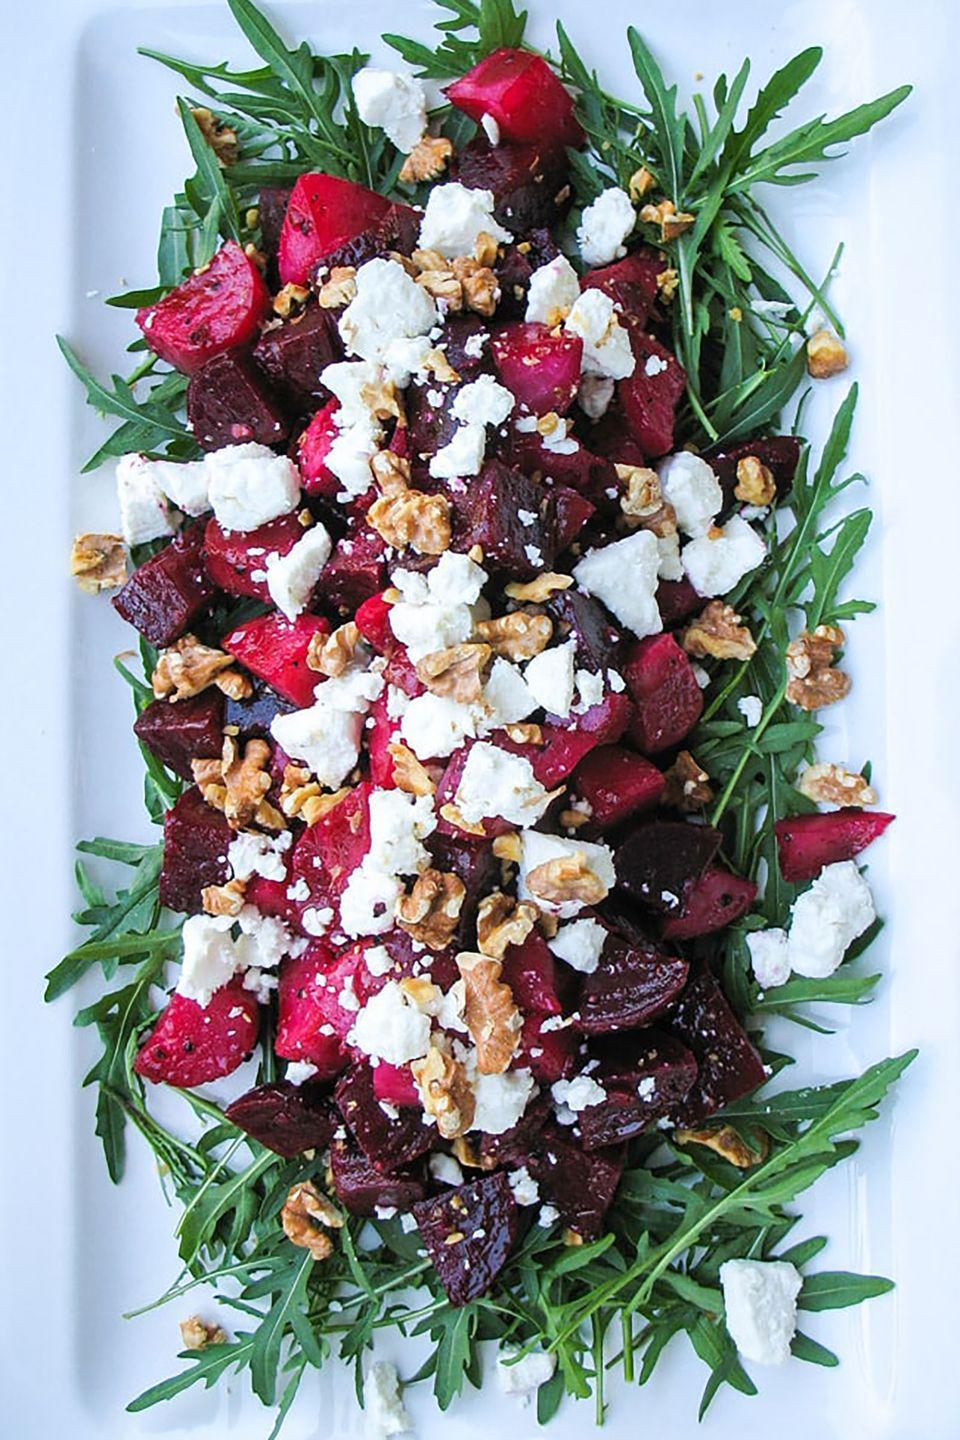 """<p>Add some color to your lunch spread with this healthy and vibrant salad. </p><p><strong>Get the recipe at <a href=""""http://thecookspyjamas.com/roasted-beetroot-goats-cheese-walnut-salad/"""" rel=""""nofollow noopener"""" target=""""_blank"""" data-ylk=""""slk:The Cook's Pyjamas"""" class=""""link rapid-noclick-resp"""">The Cook's Pyjamas</a>.</strong><br></p>"""